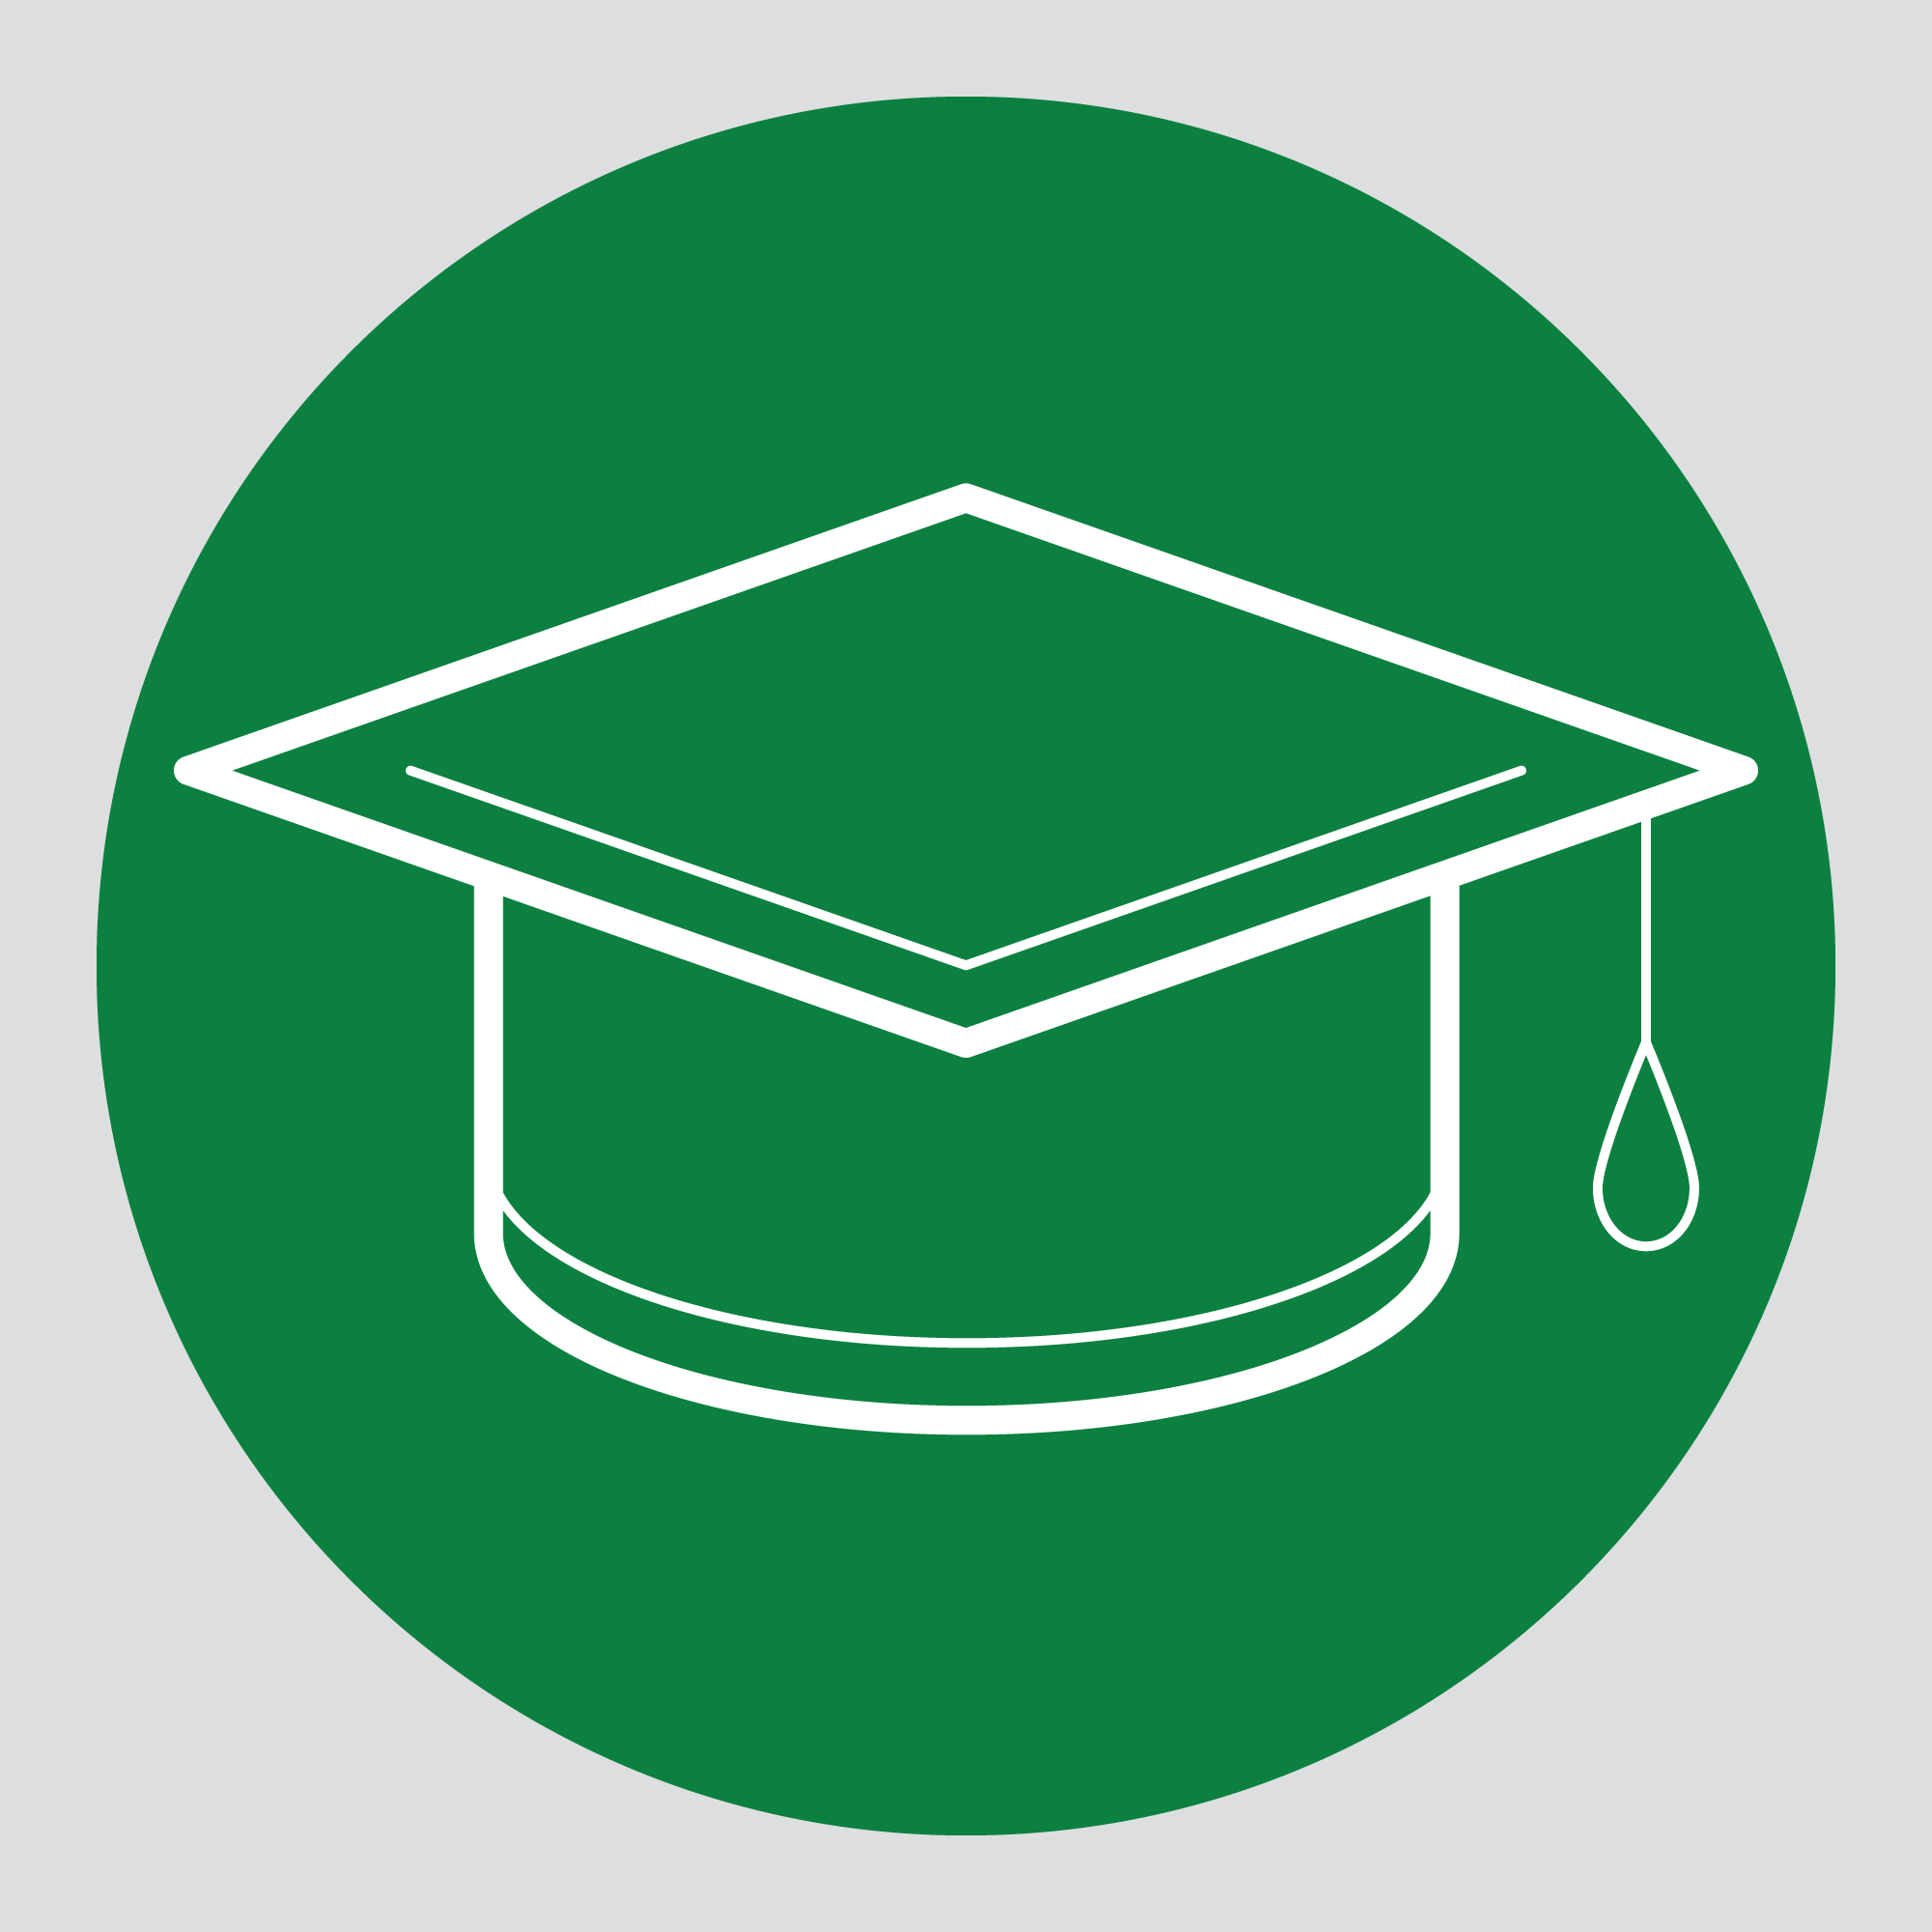 graduation-cap-icon-featured-image